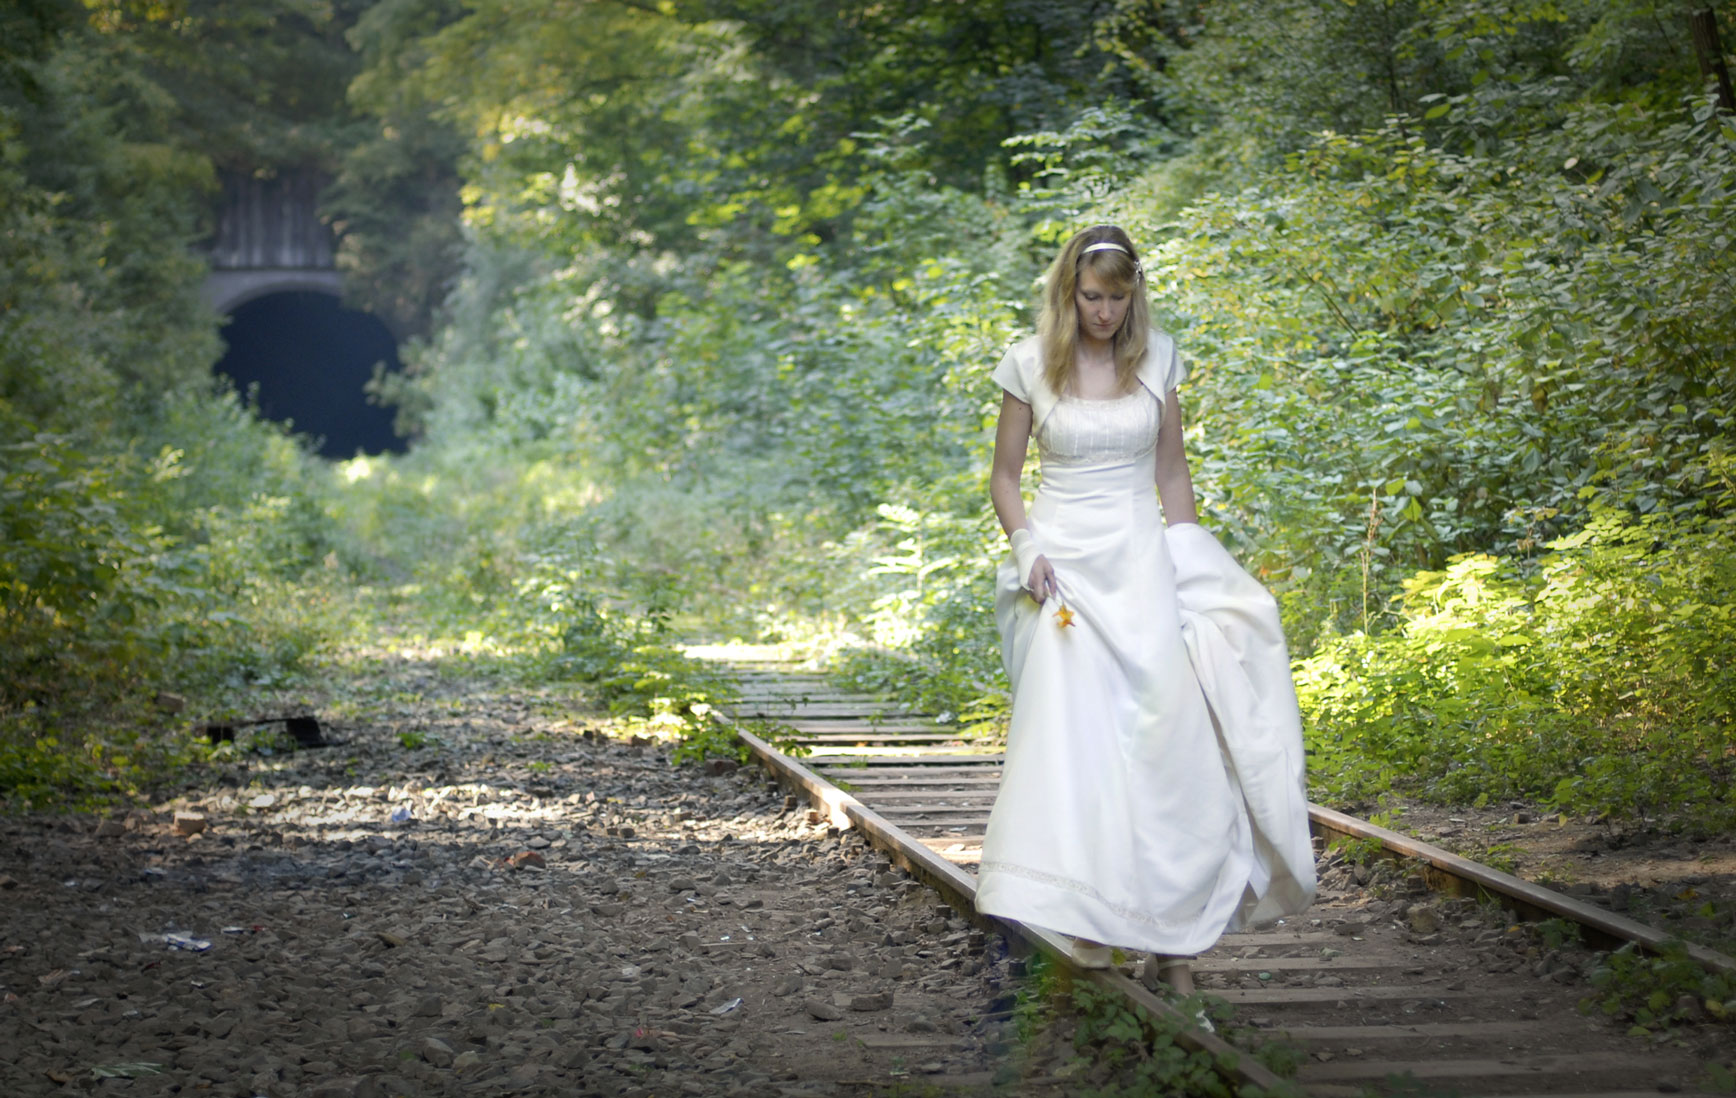 hochzeitsfotos-trash-the-dress-fotografie-andrea-rompa-14